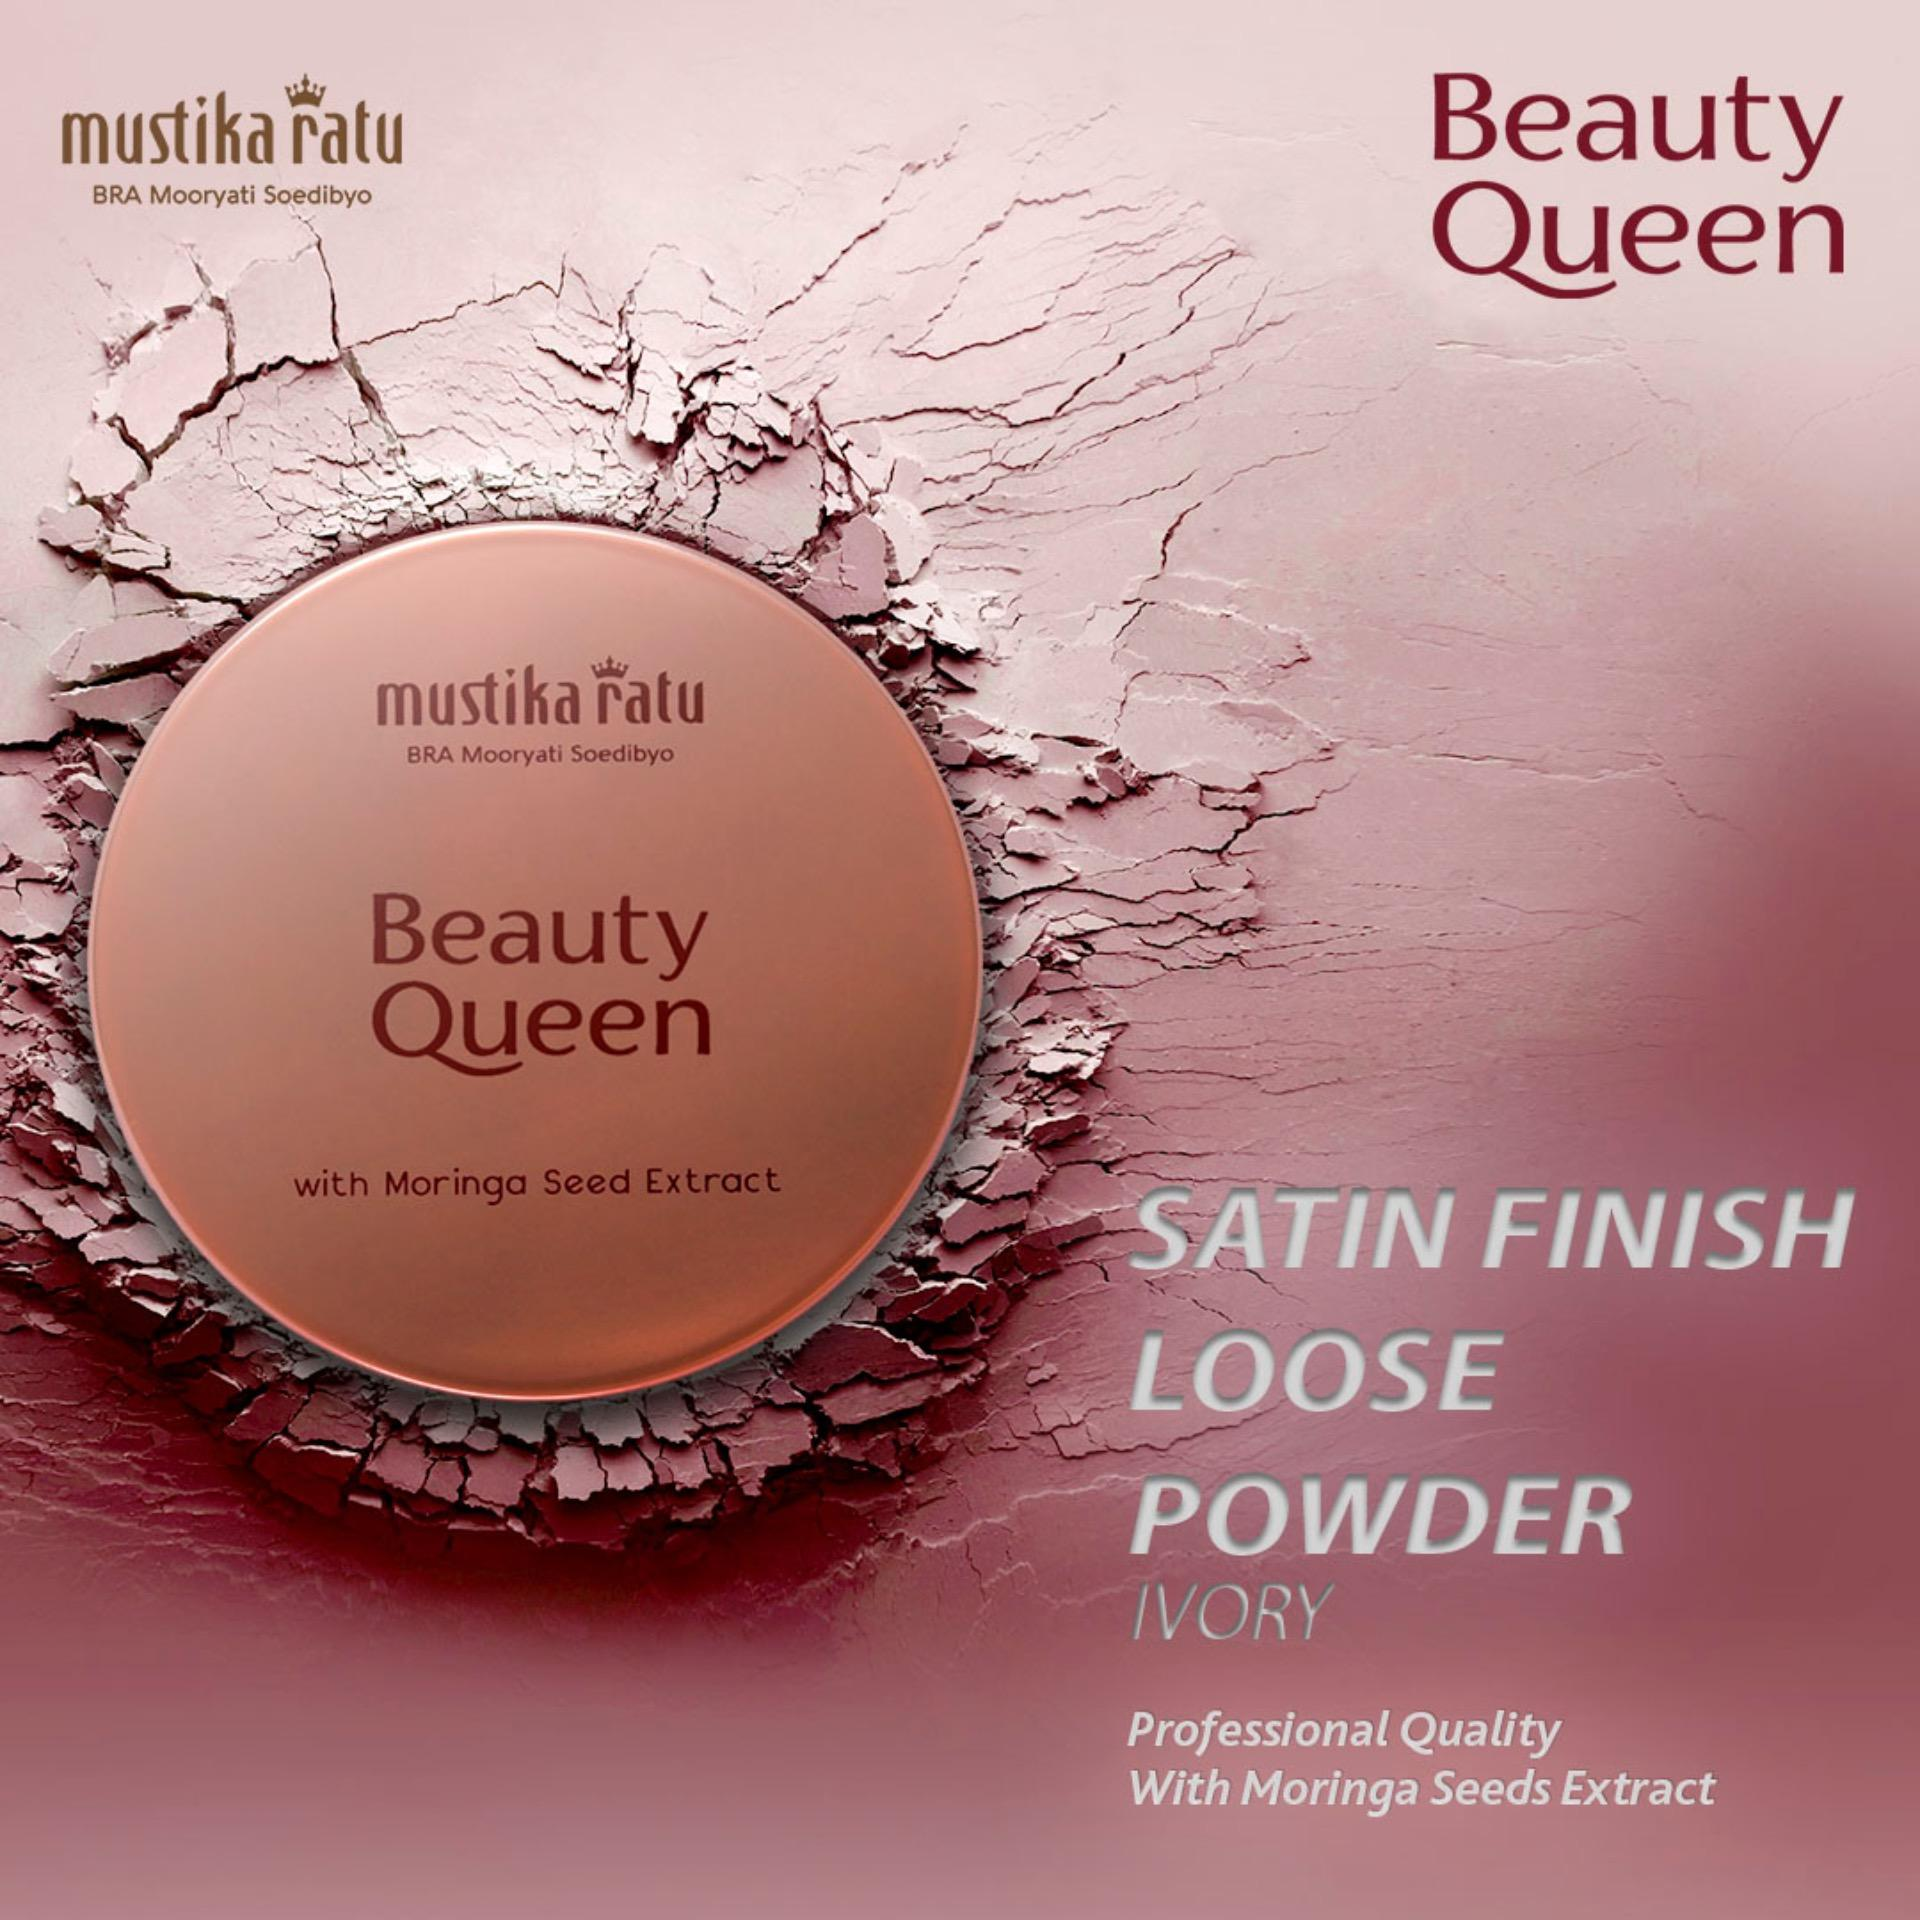 Mustika Ratu Kosmetik Wajah 2 Warna Satin Finish Loose Powder Antioksidan Vitamin E - Ivory